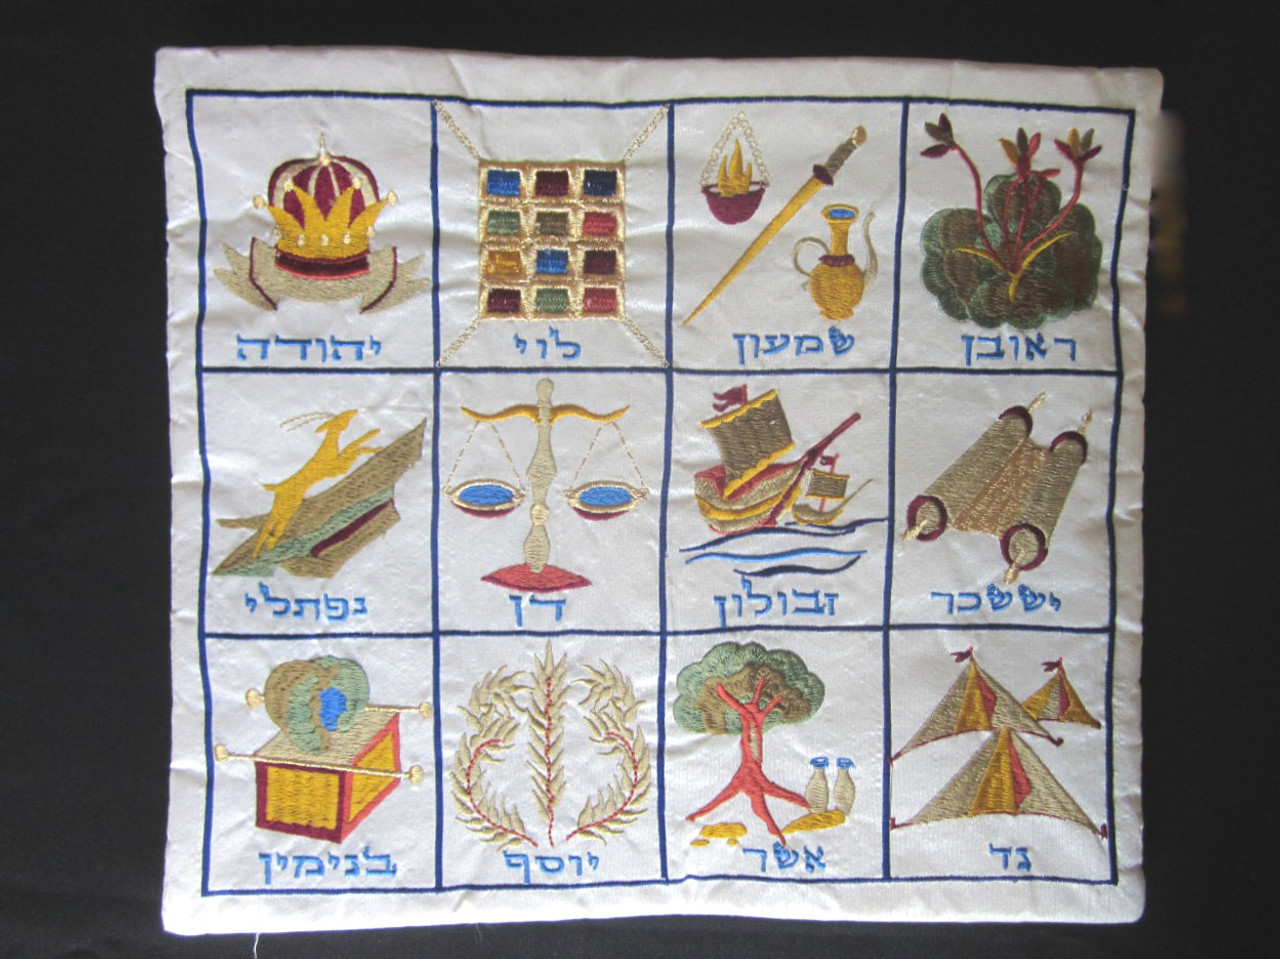 Twelve Tribes Tallit Bag in White